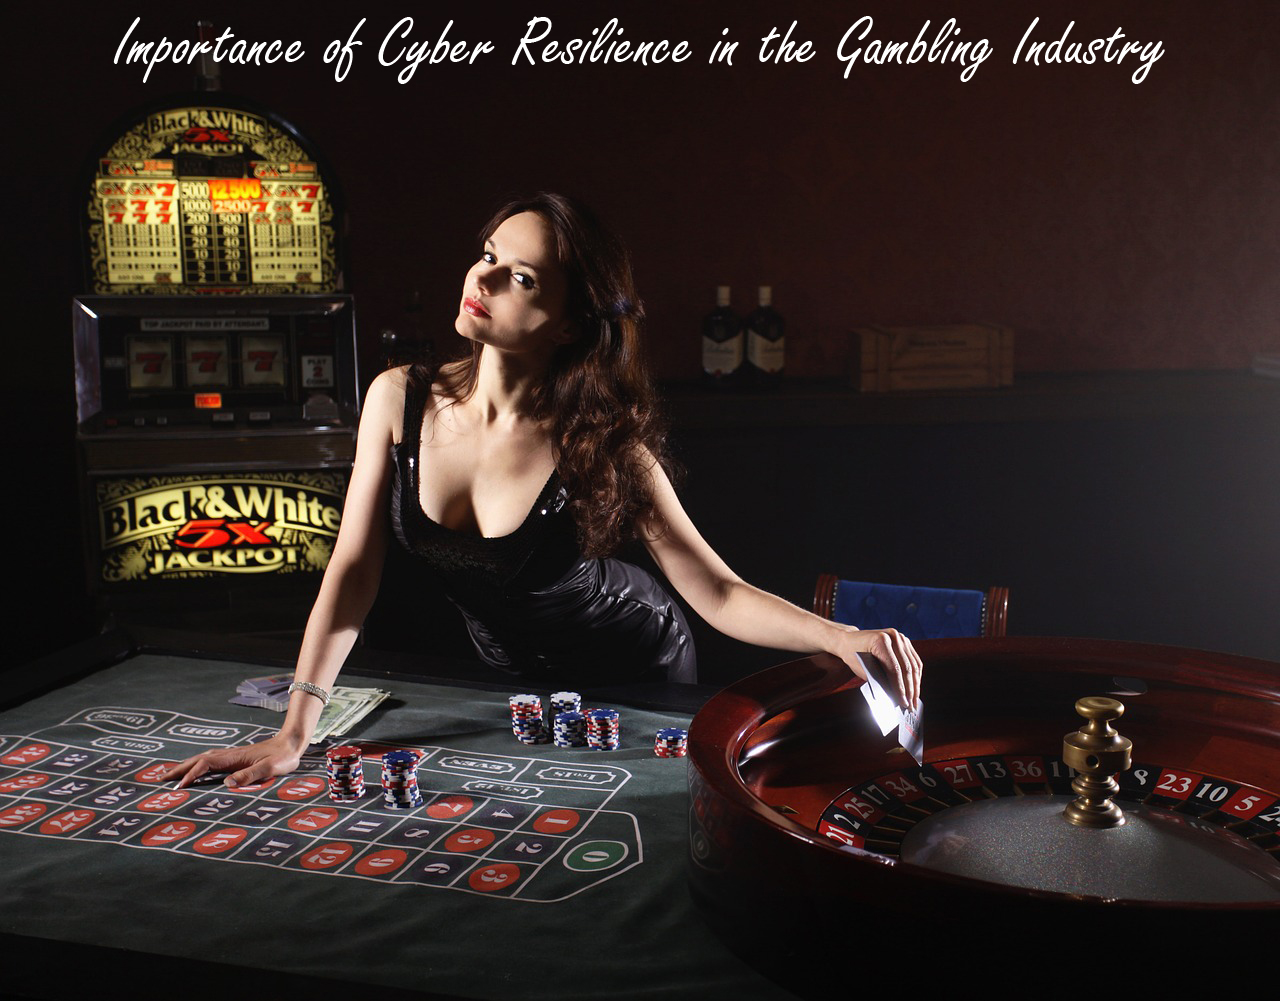 Importance of Cyber Resilience in the Gambling Industry